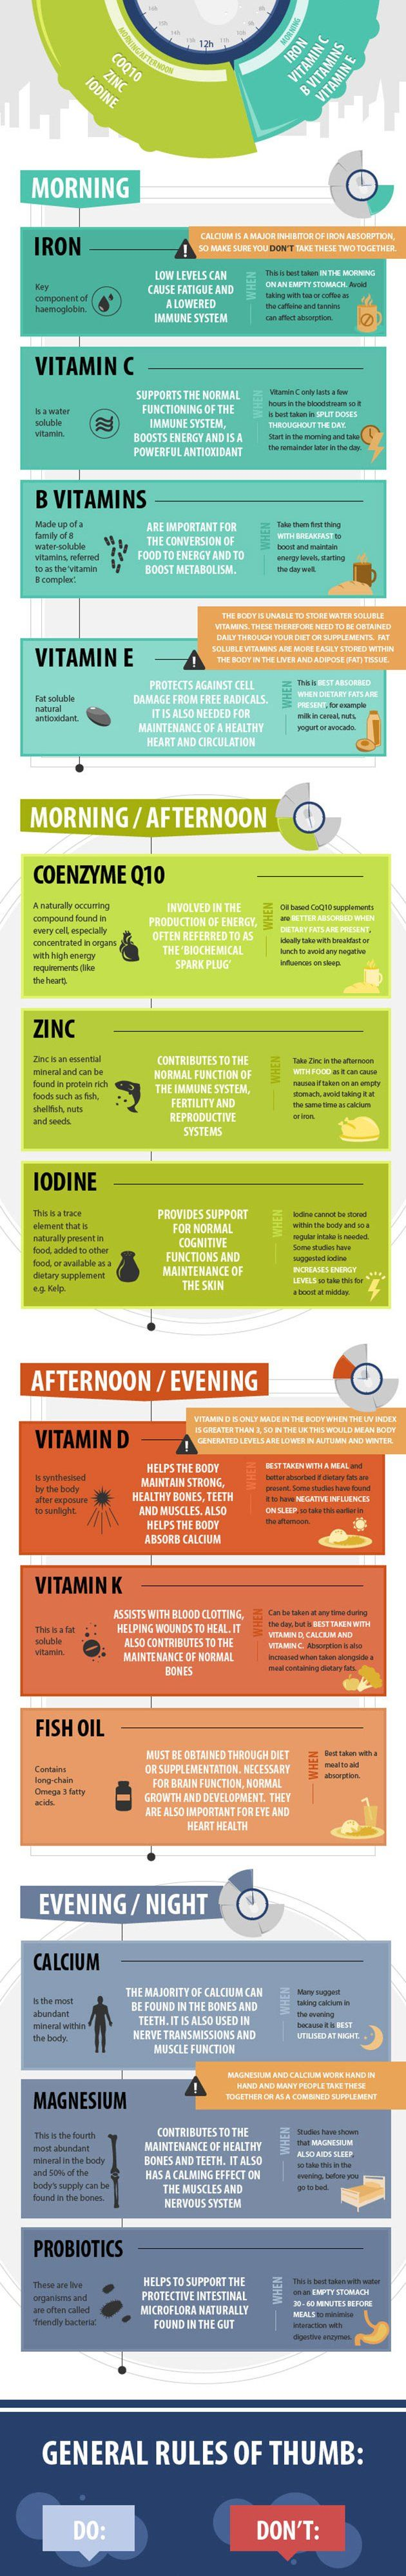 A Guide To Optimising Your Vitamins And Supplements Infographic - great advice, especially for #endo gals who often need to take MANY supplements